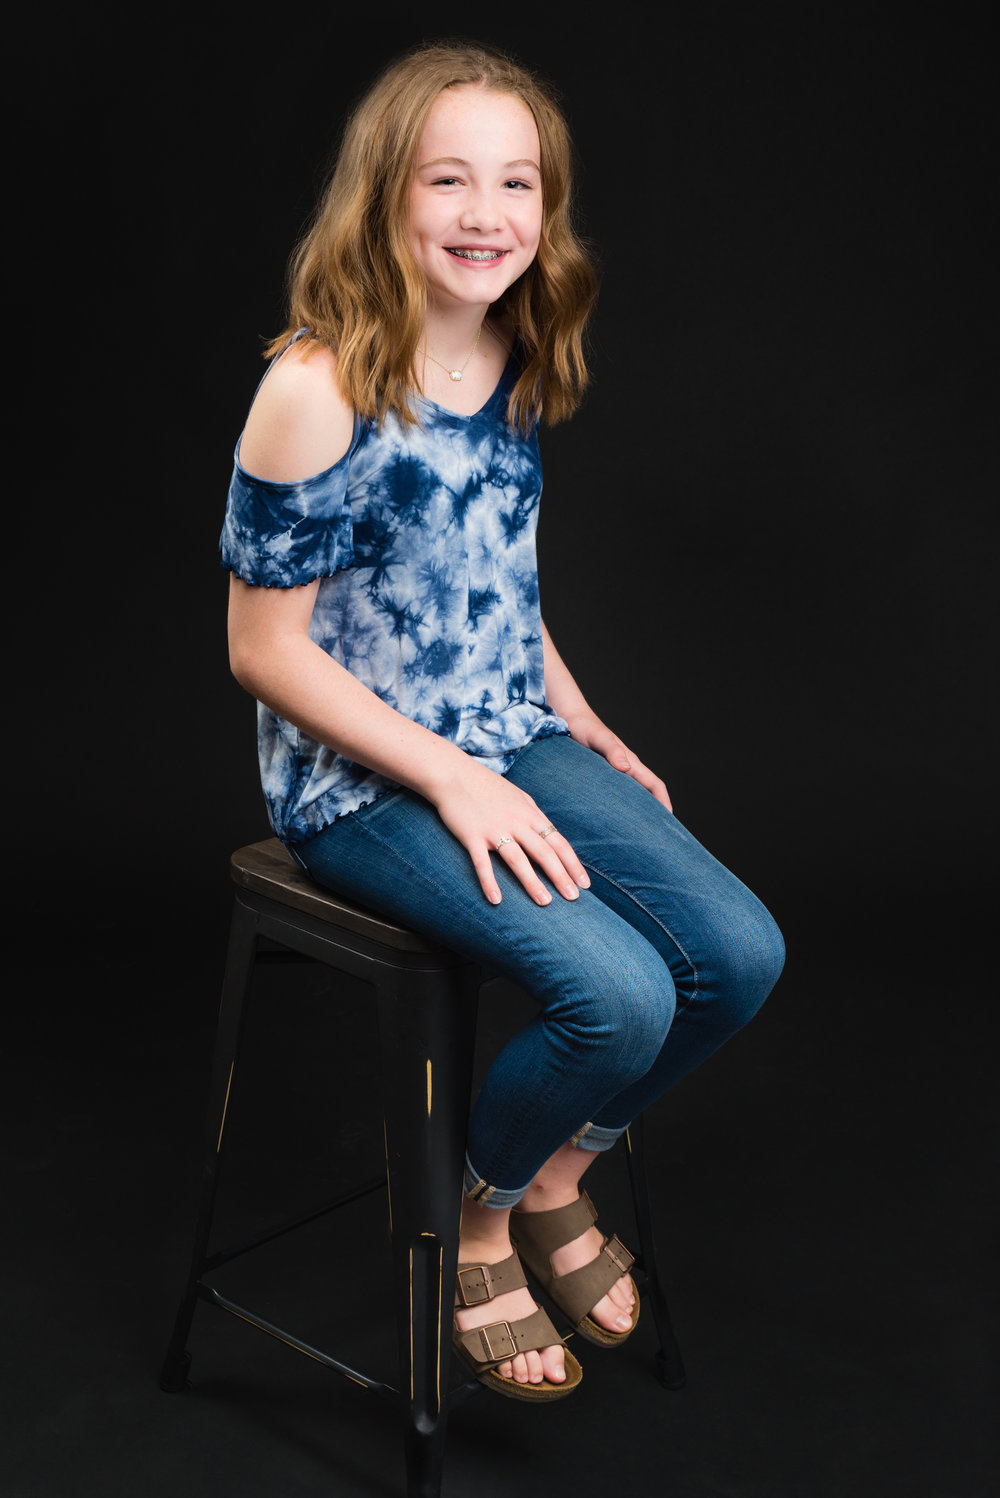 2018_September_03-Leah_Boyle_Portrait_Shoot-50759-Edit.jpg